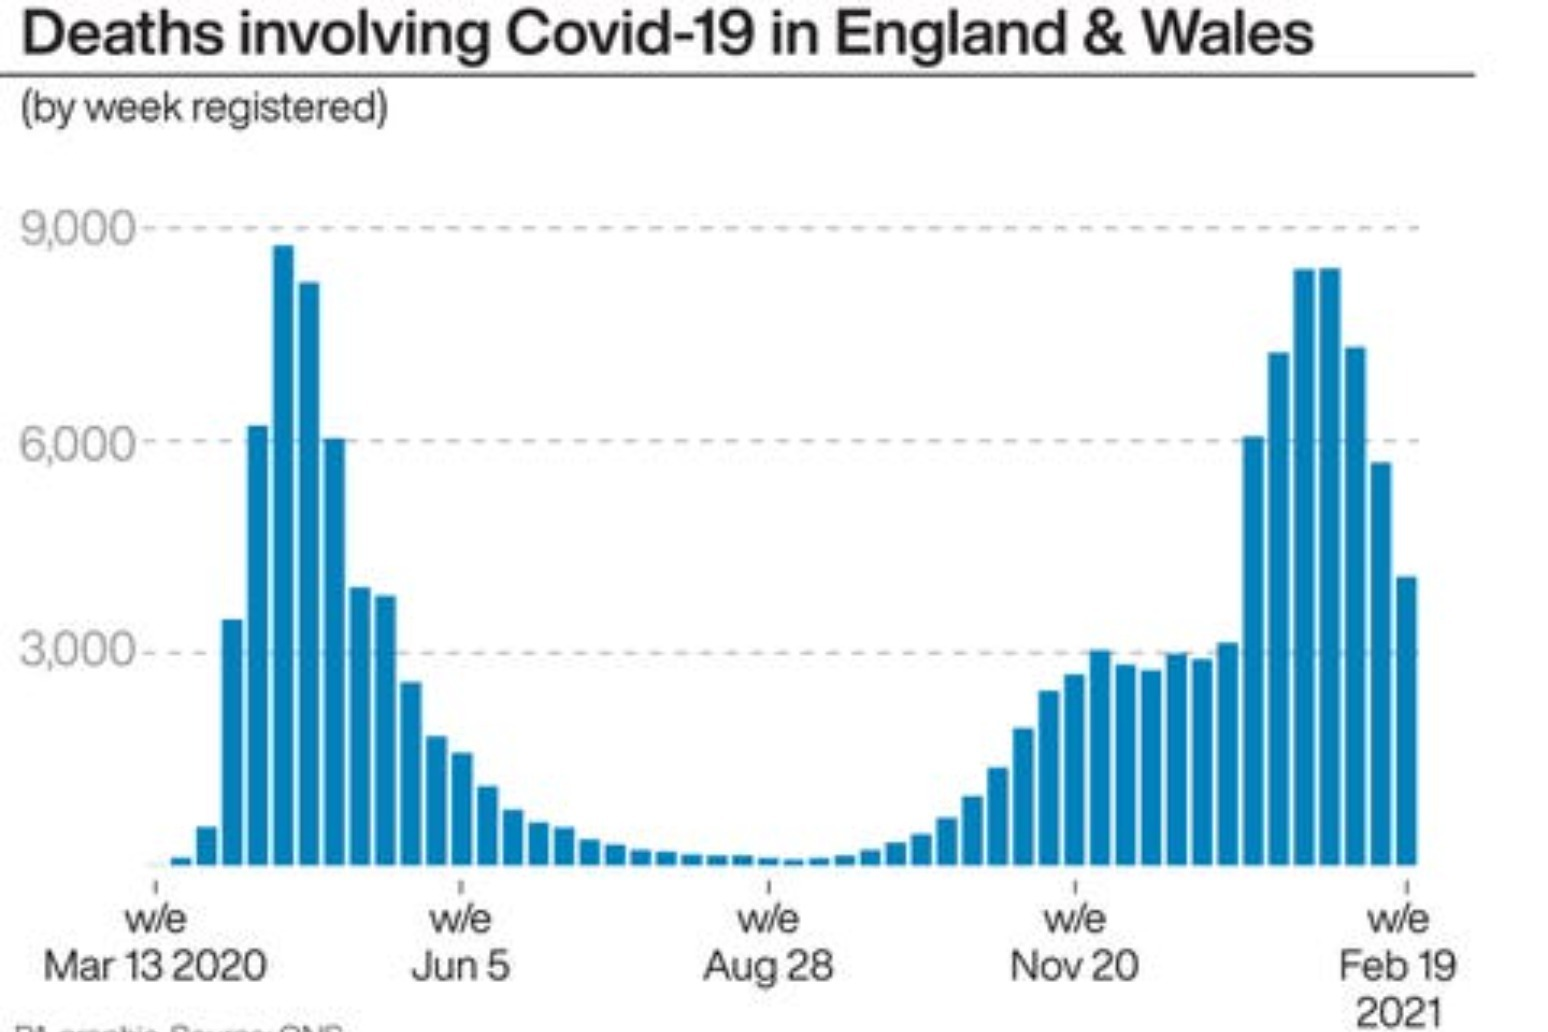 WEEKLY COVID DEATHS FALL TO LOWEST LEVEL SINCE START OF 2021 – ONS